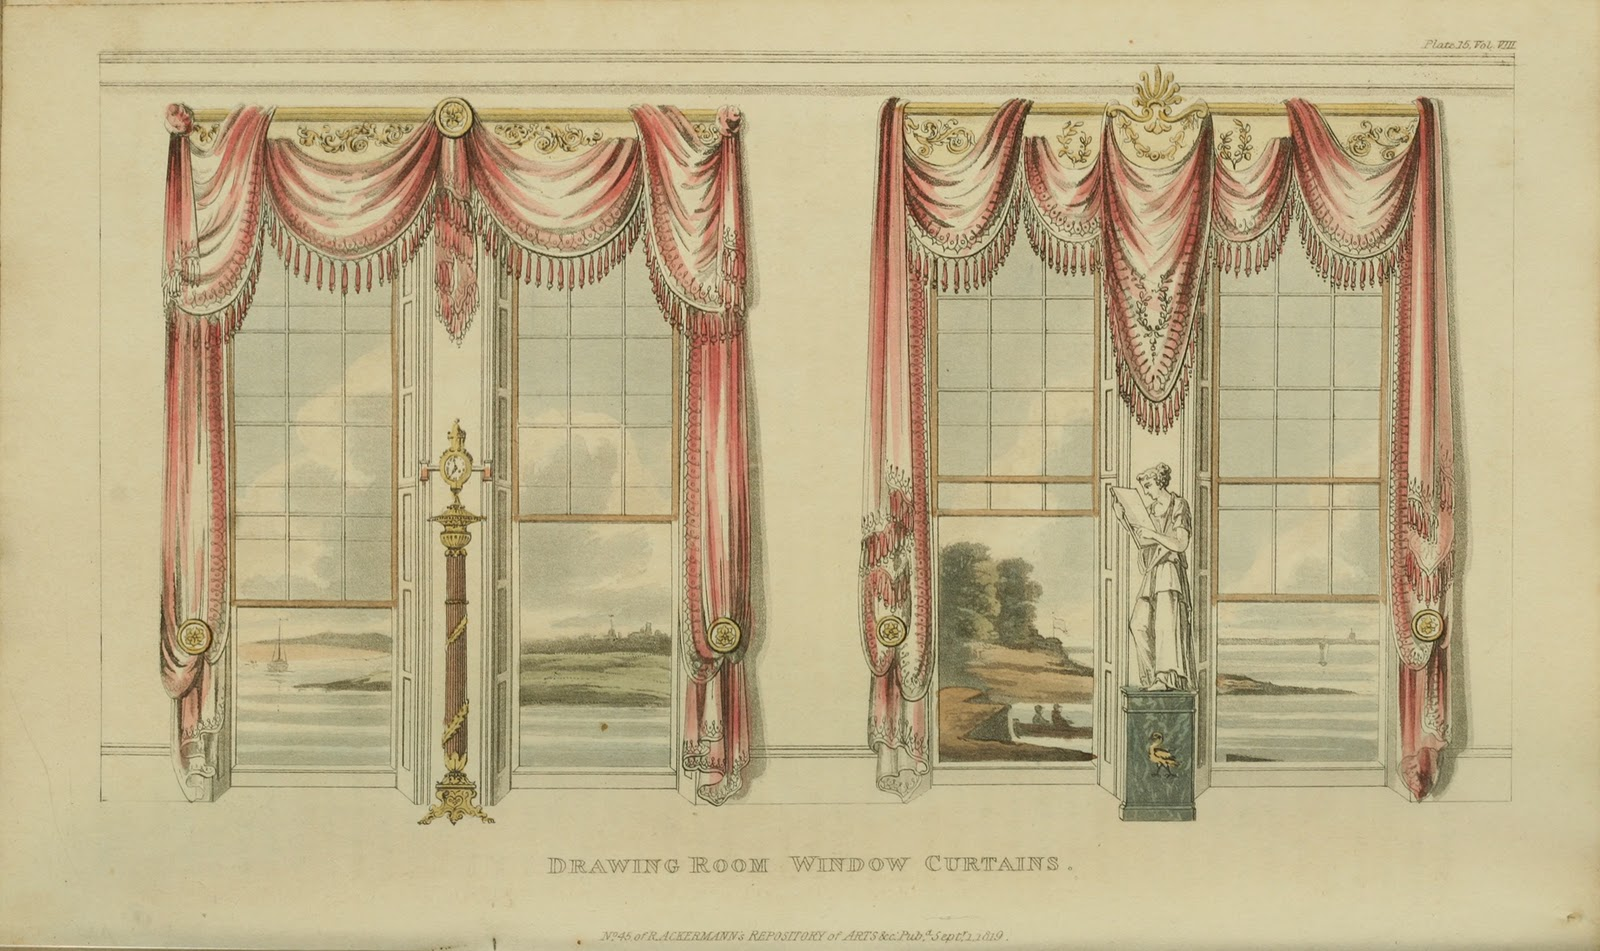 Drawn curtains